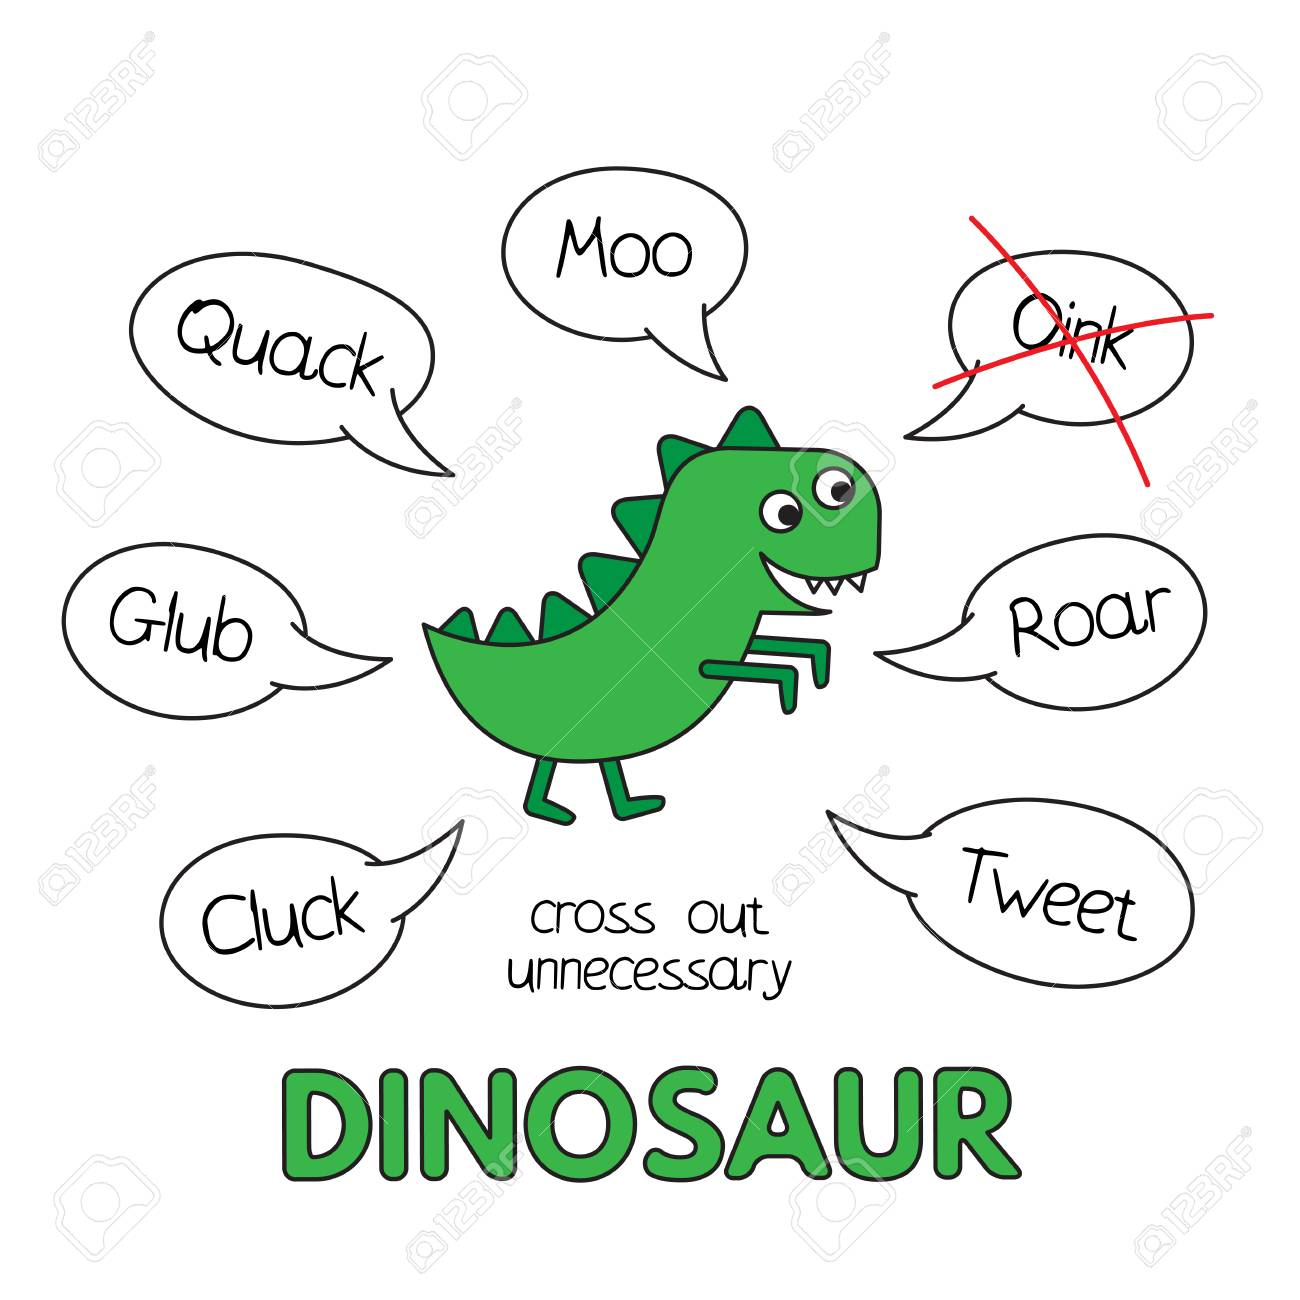 Cartoon Dinosaur Kids Learning Game Stock Photo, Picture And Royalty ...